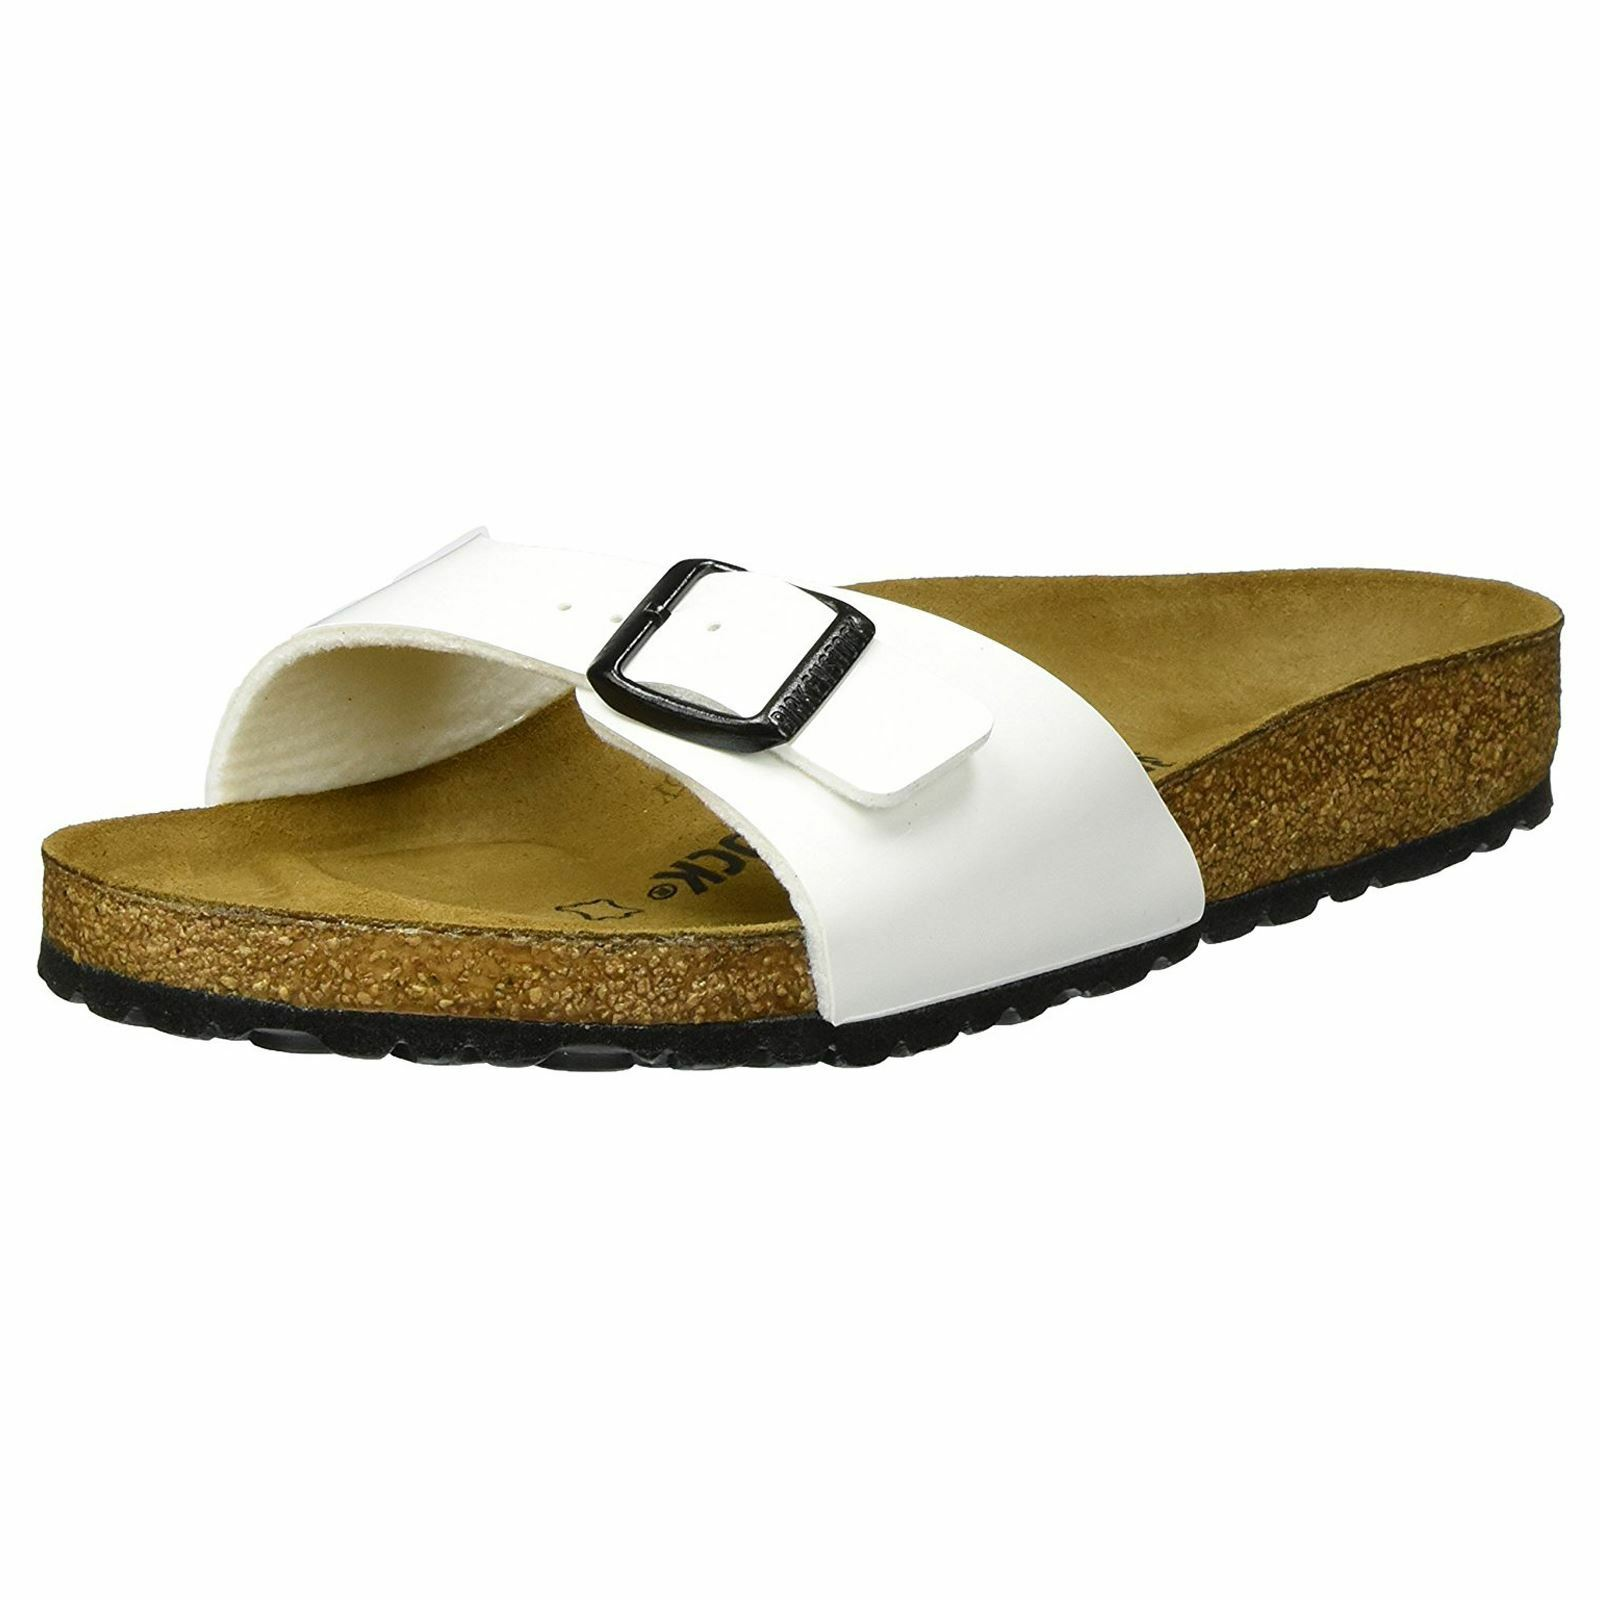 Birkenstock Madrid WEISS Damenschuhe Birko-Flor Slip-on Casual Summer Slide Sandales